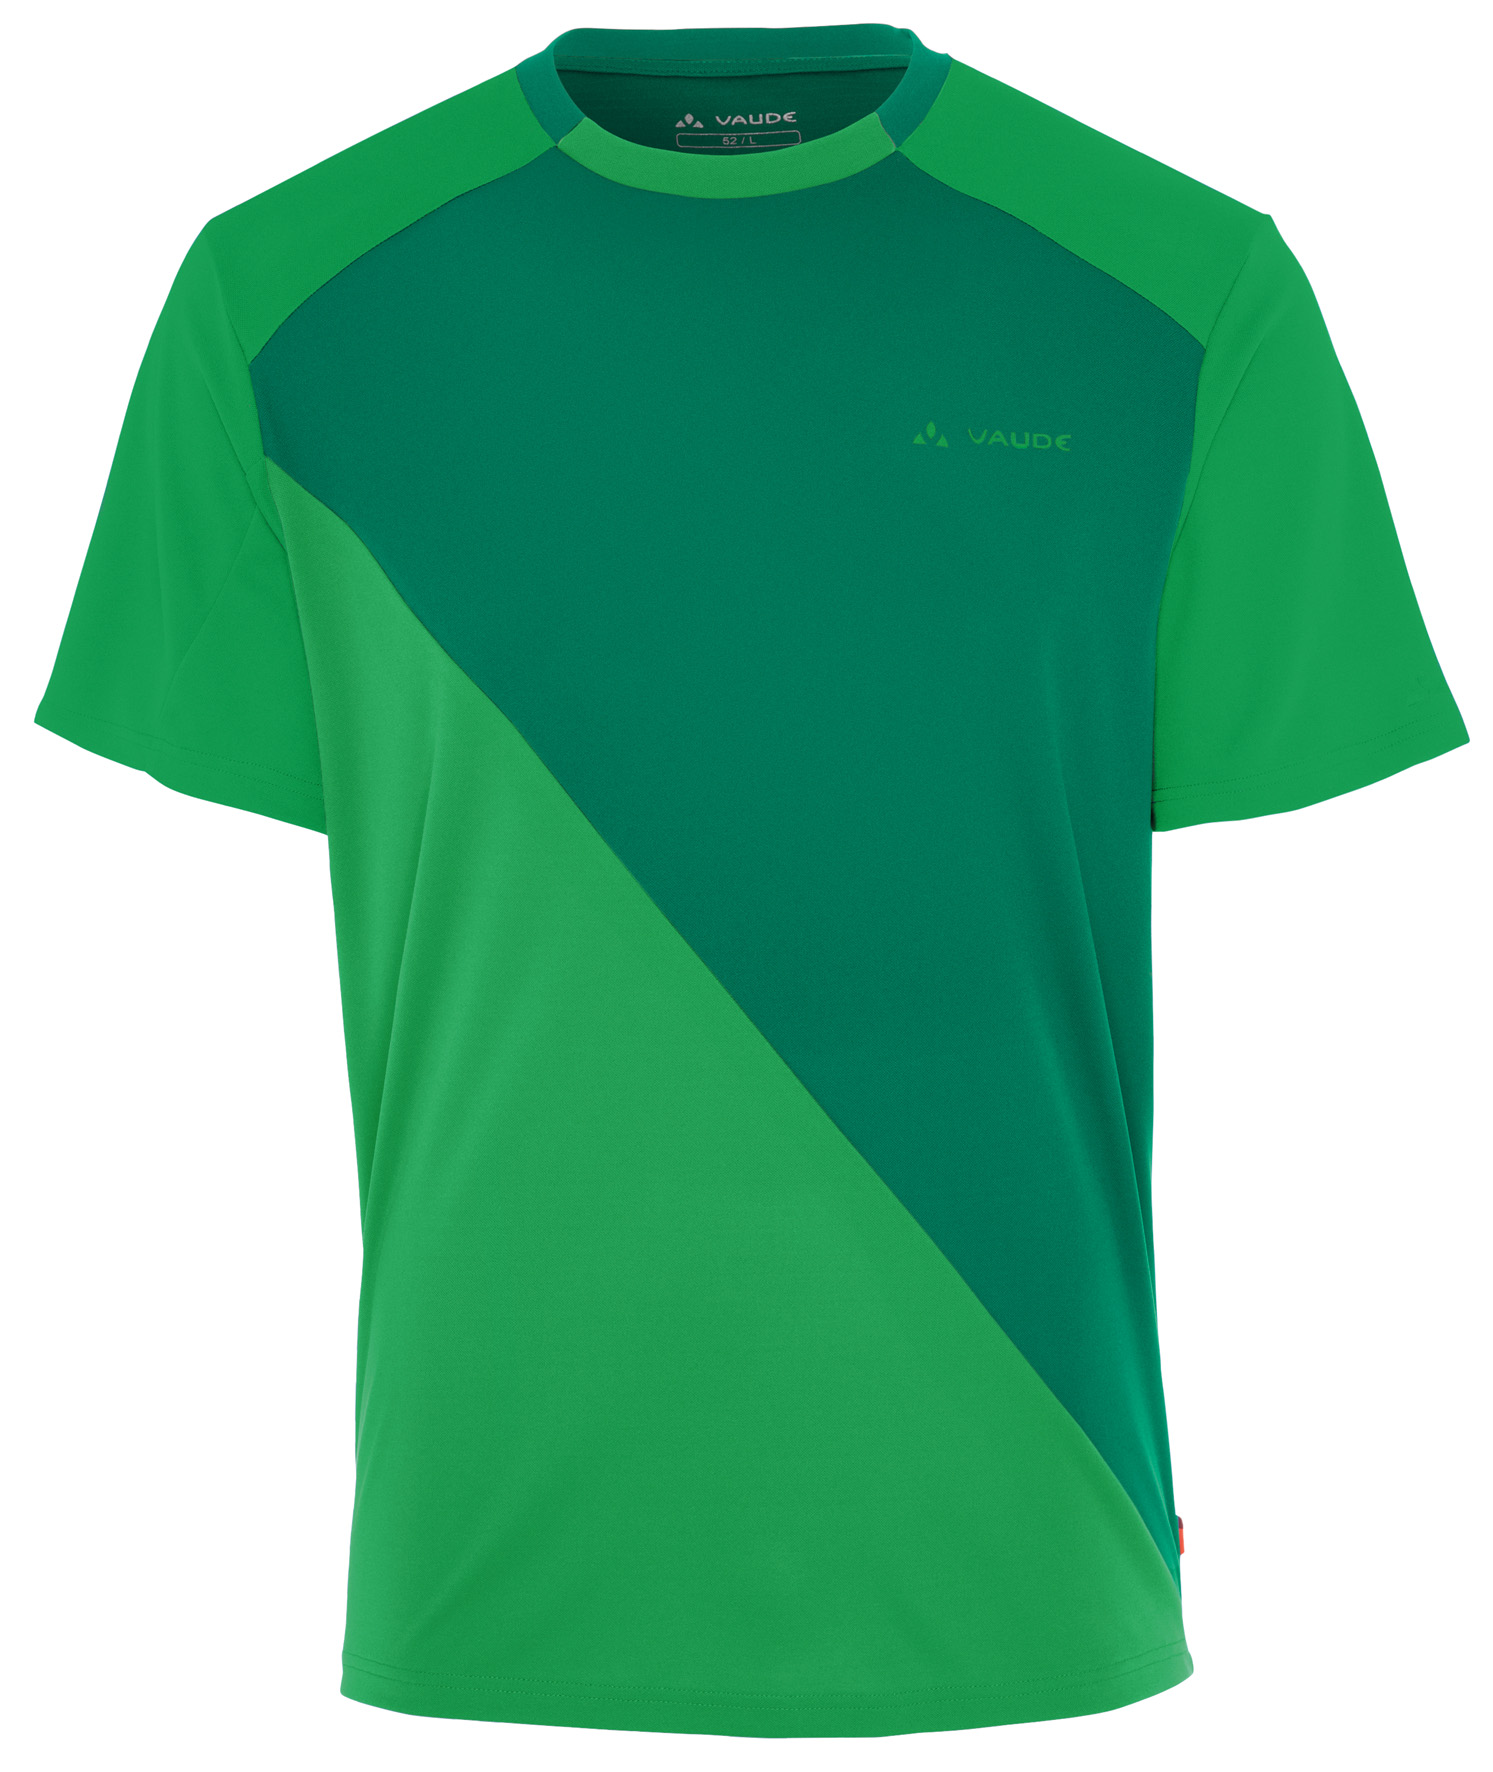 Men´s Moab Shirt yucca green Größe S - schneider-sports